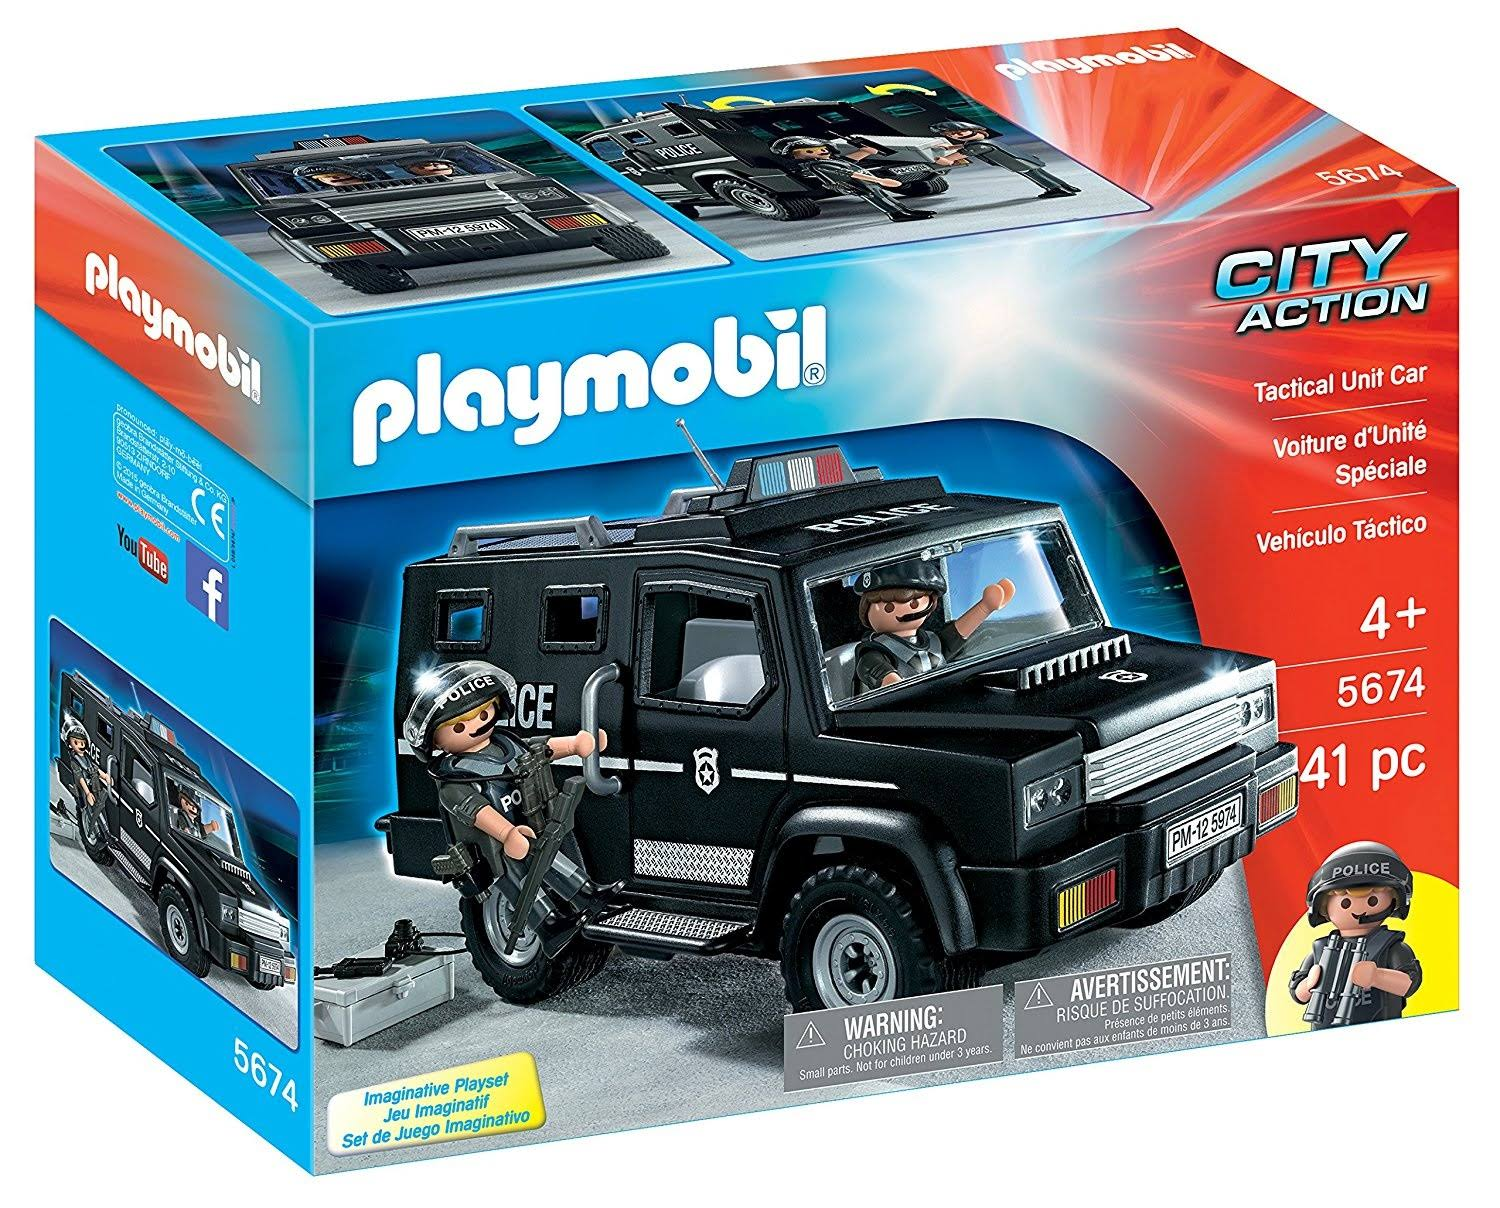 Playmobil City Action Tactical Unit Car - 41 Pieces